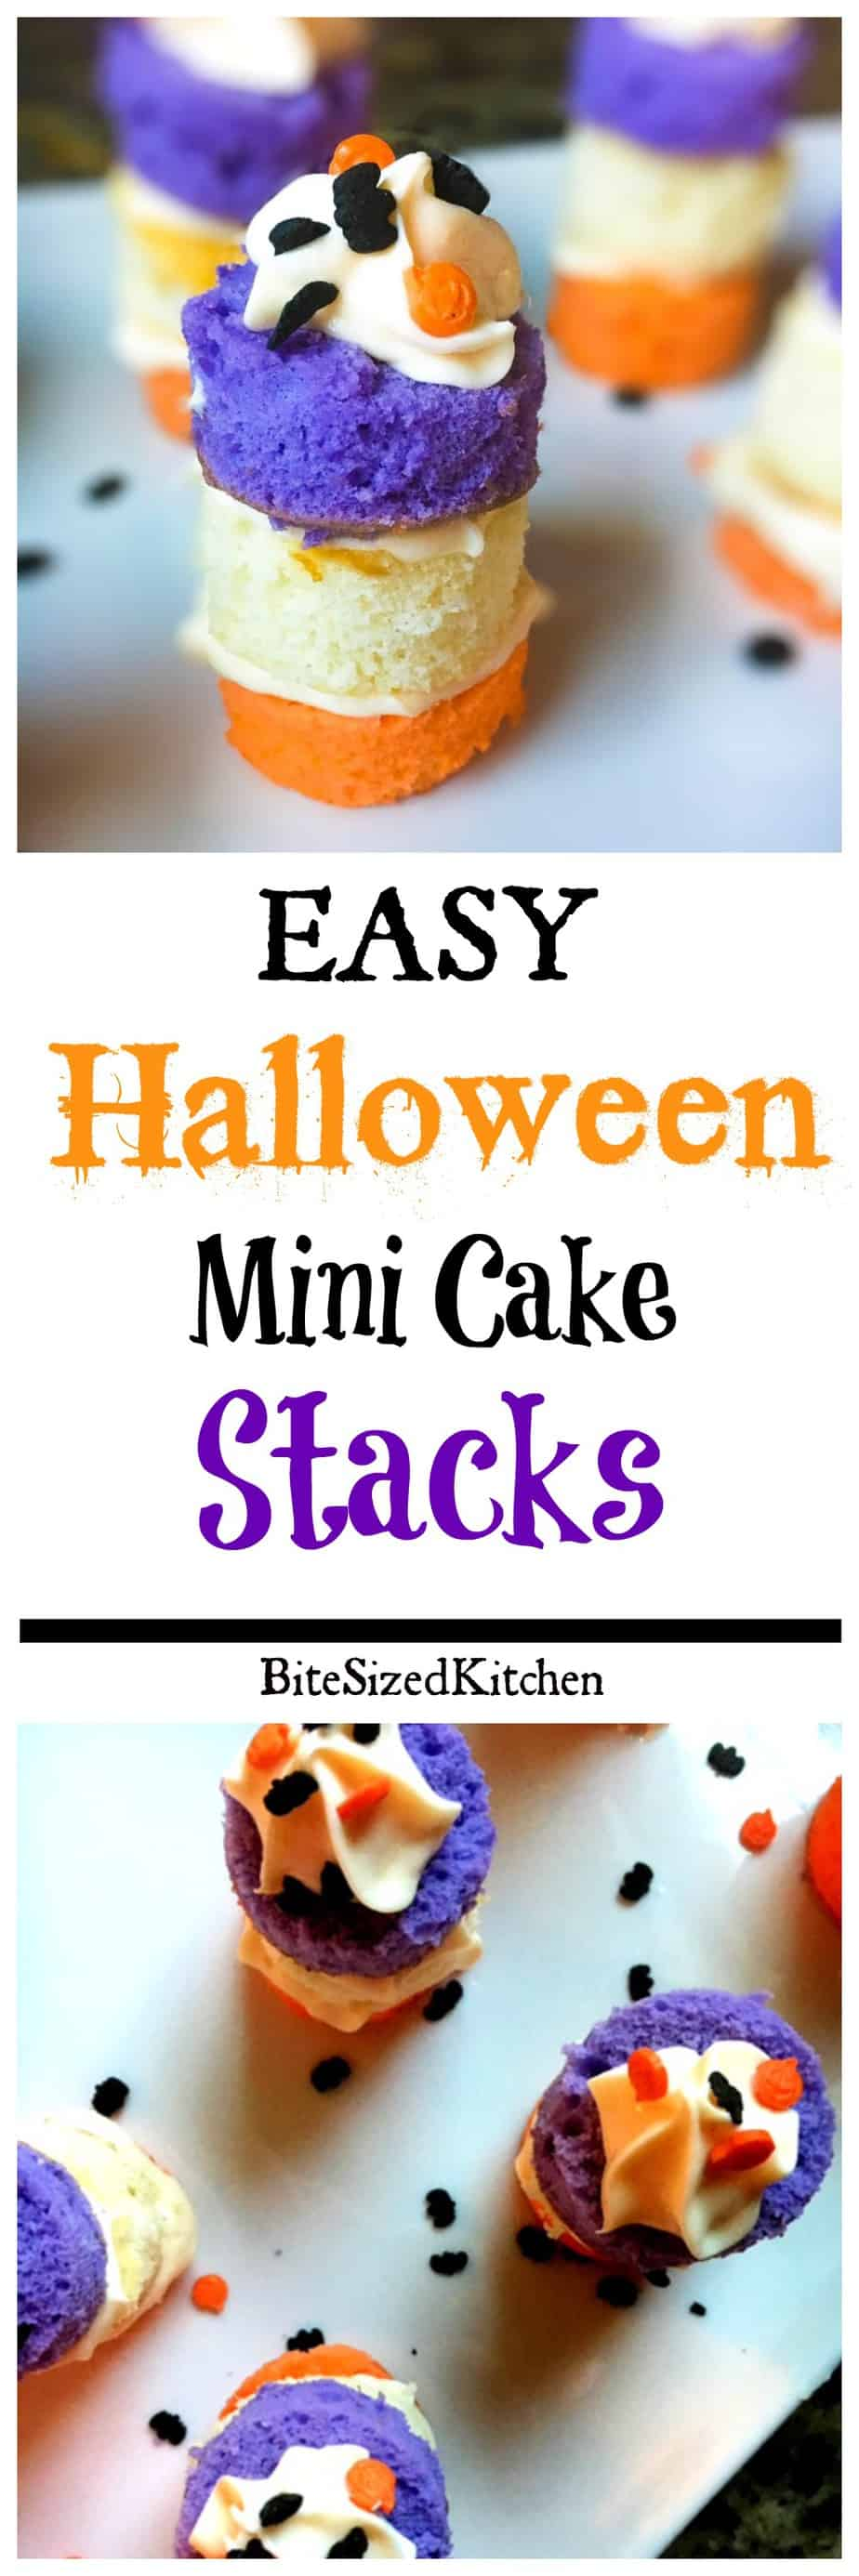 Easy Halloween Mini Cake Stacks perfect for any party! An easy bite sized mini dessert that both kids and adults will love!